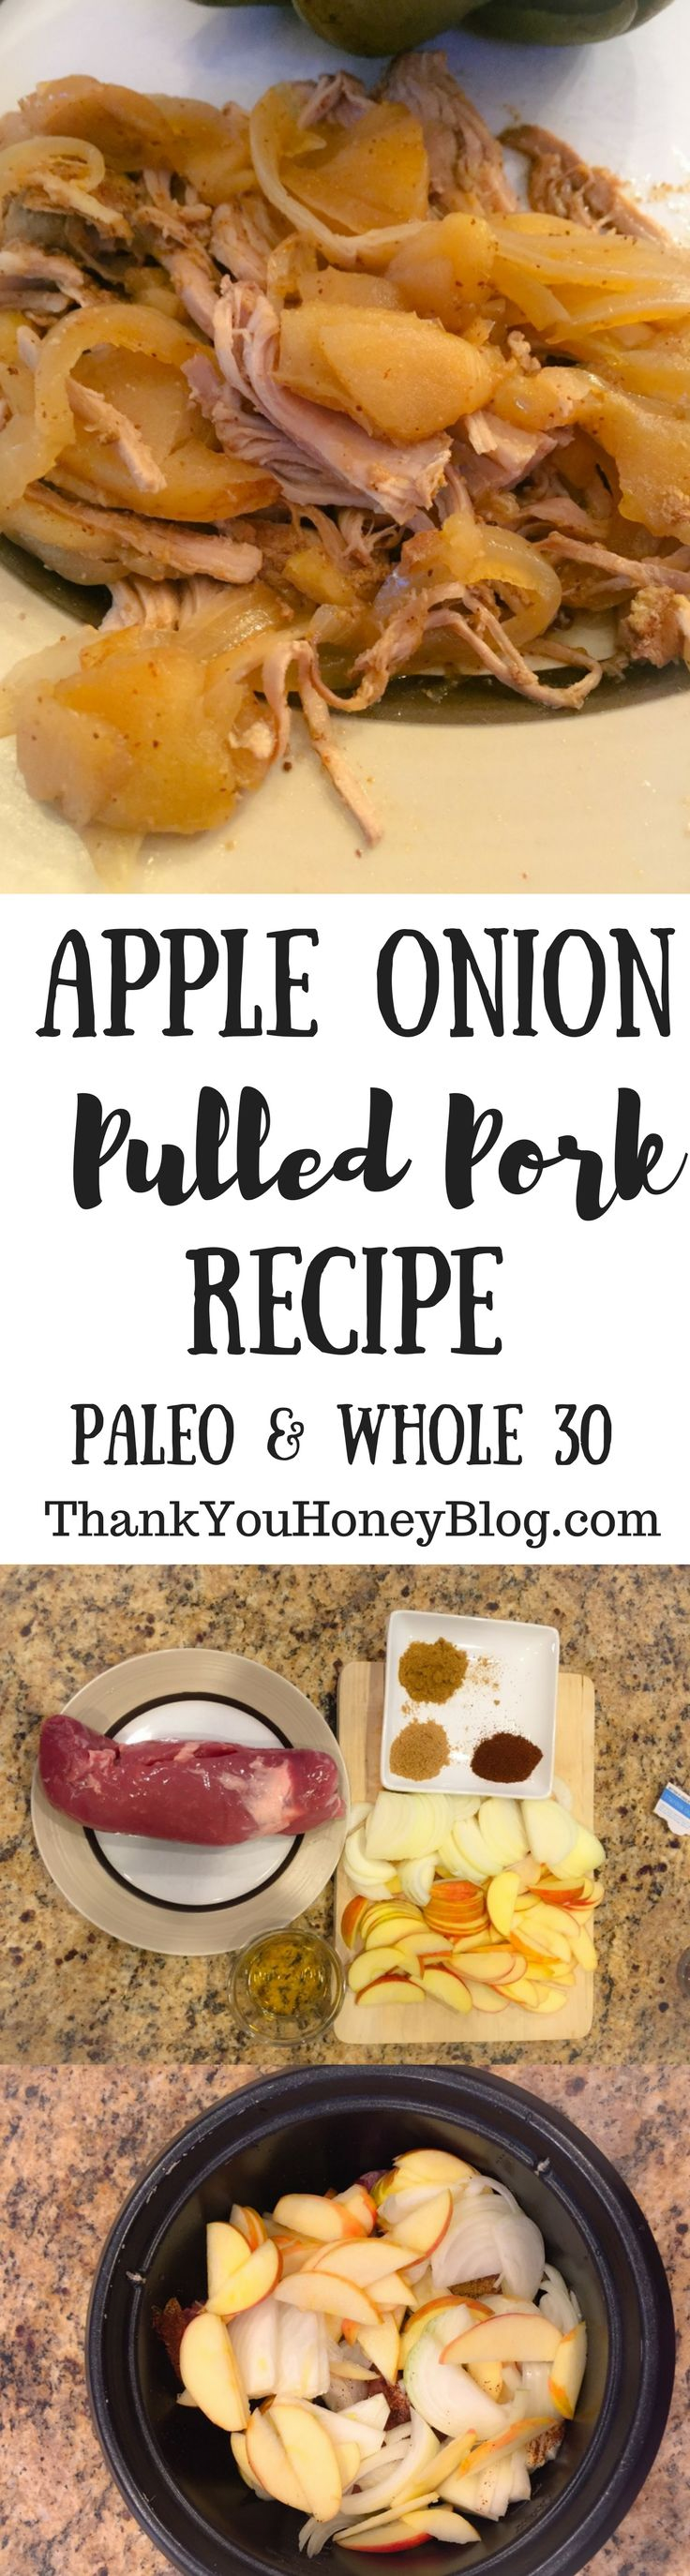 Crockpot, Simple Recipe, Easy Recipe, One Pot Meal, Paleo Apple Onion Pulled Pork, Gluten Free, Healthy, Paleo, Whole 30, Fall Recipes, Main Dish, Dinner,